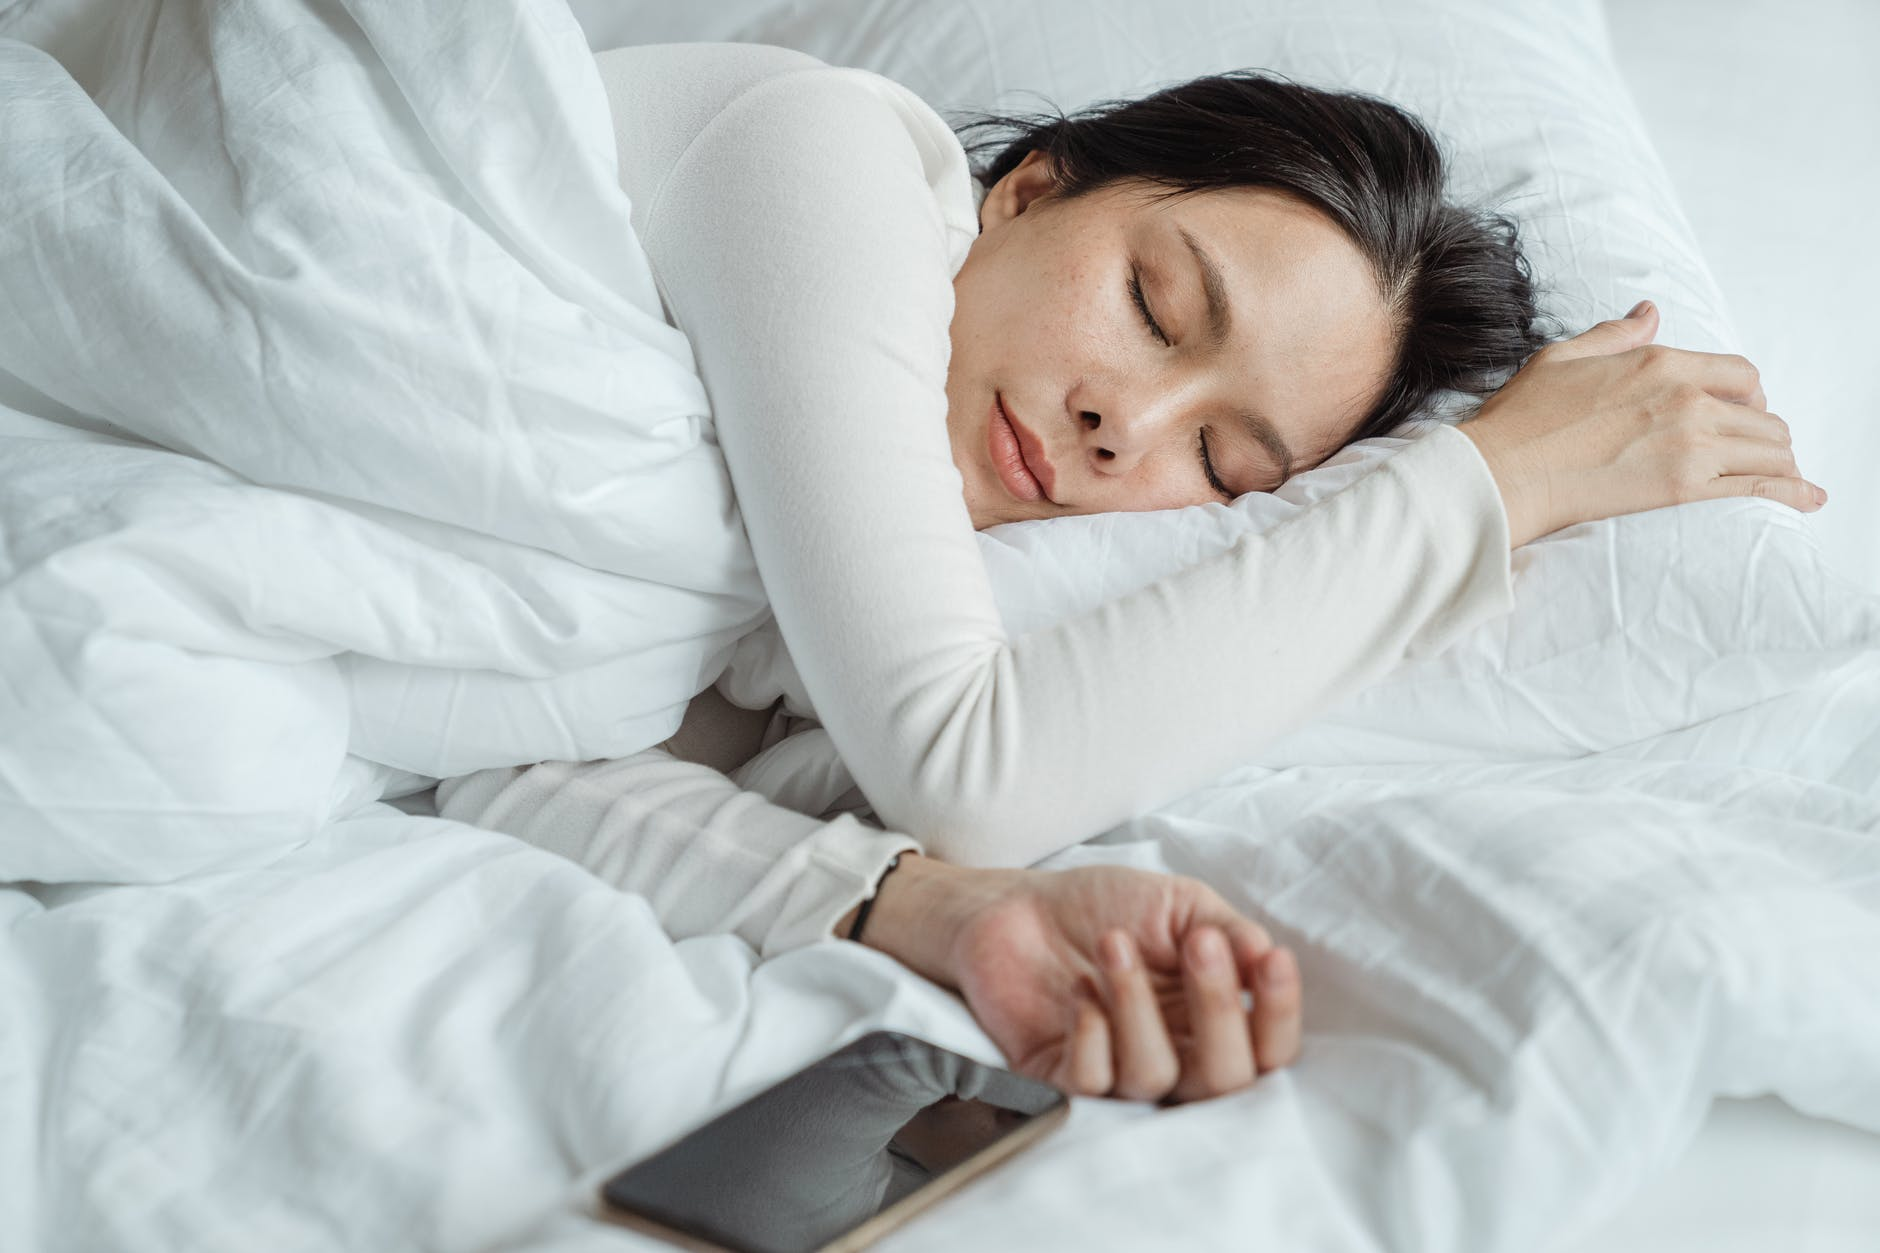 woman sleeping in bed near smartphone